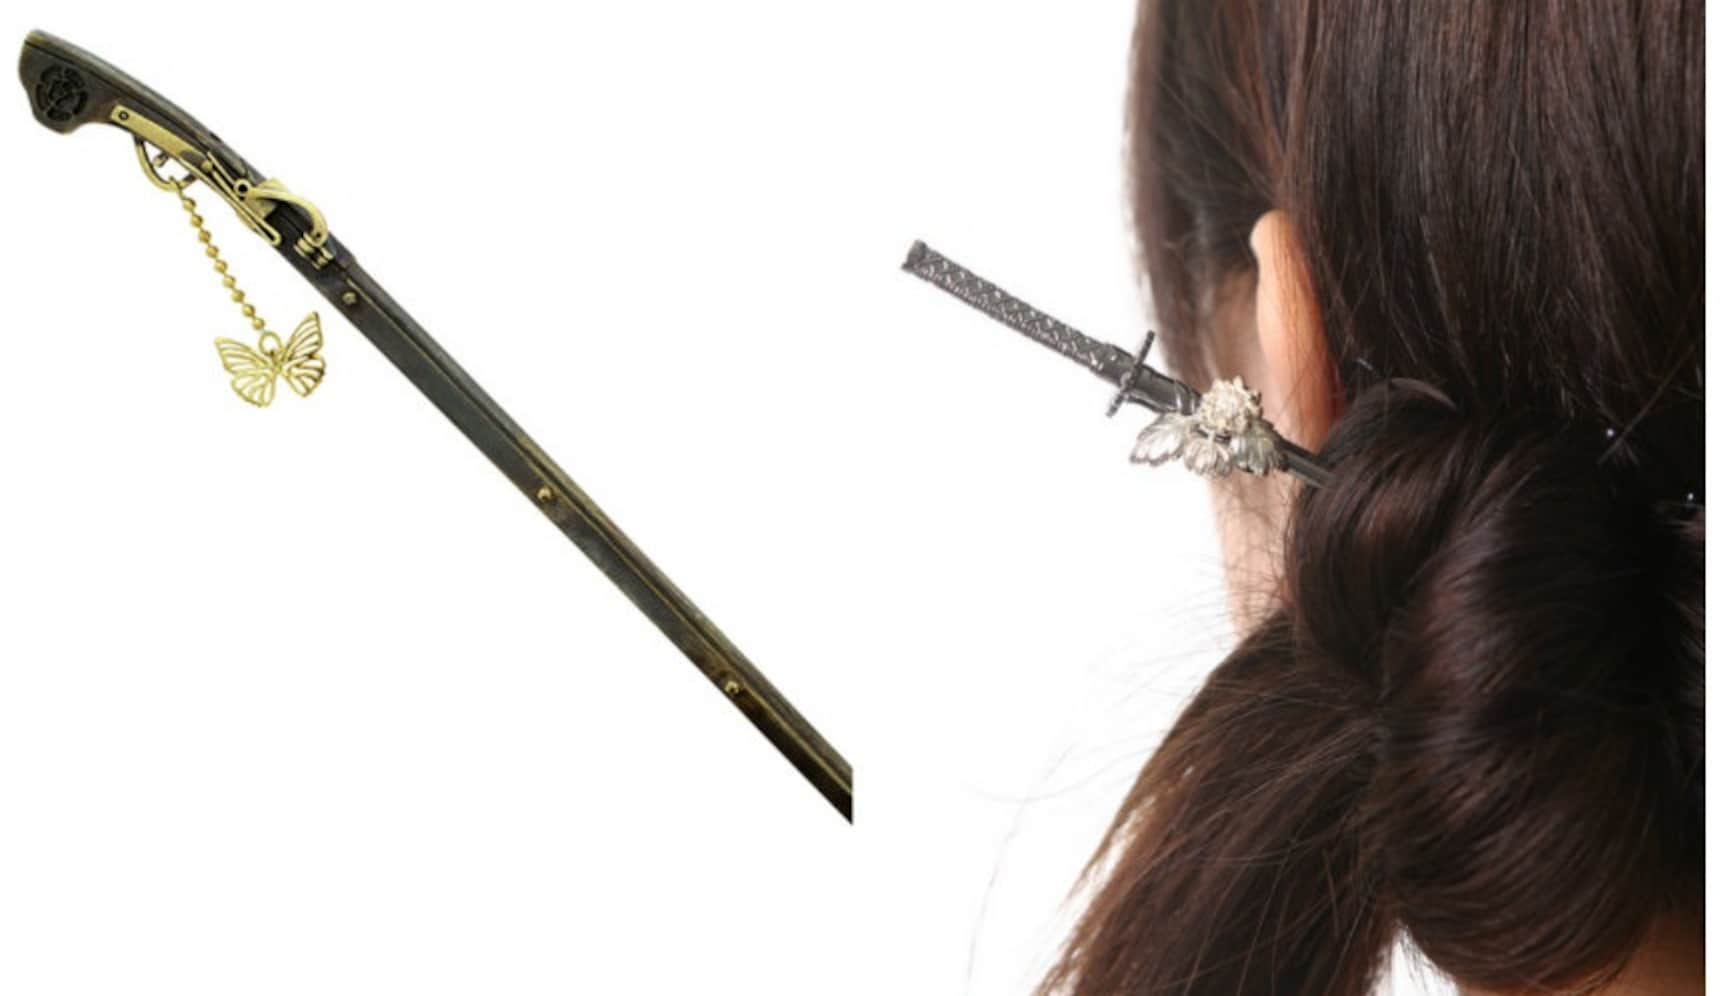 Pin Your Hair Up with Mini Japanese Weapons